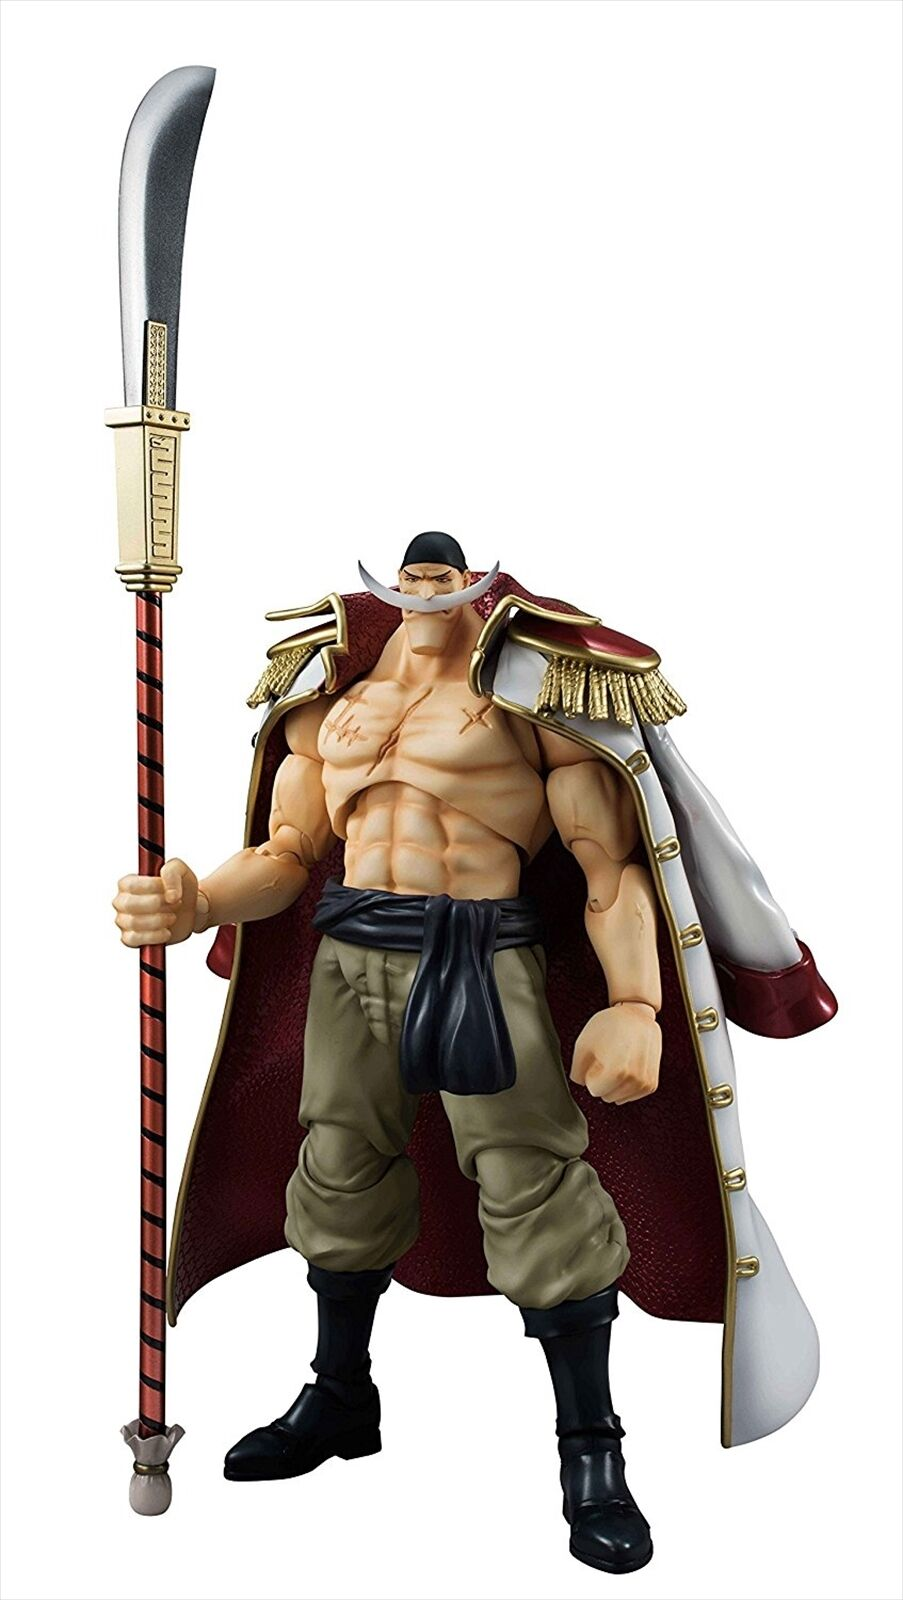 Megahouse VAH Variable Action Heroes One Piece Weiß Beard Edward Newgate Figure